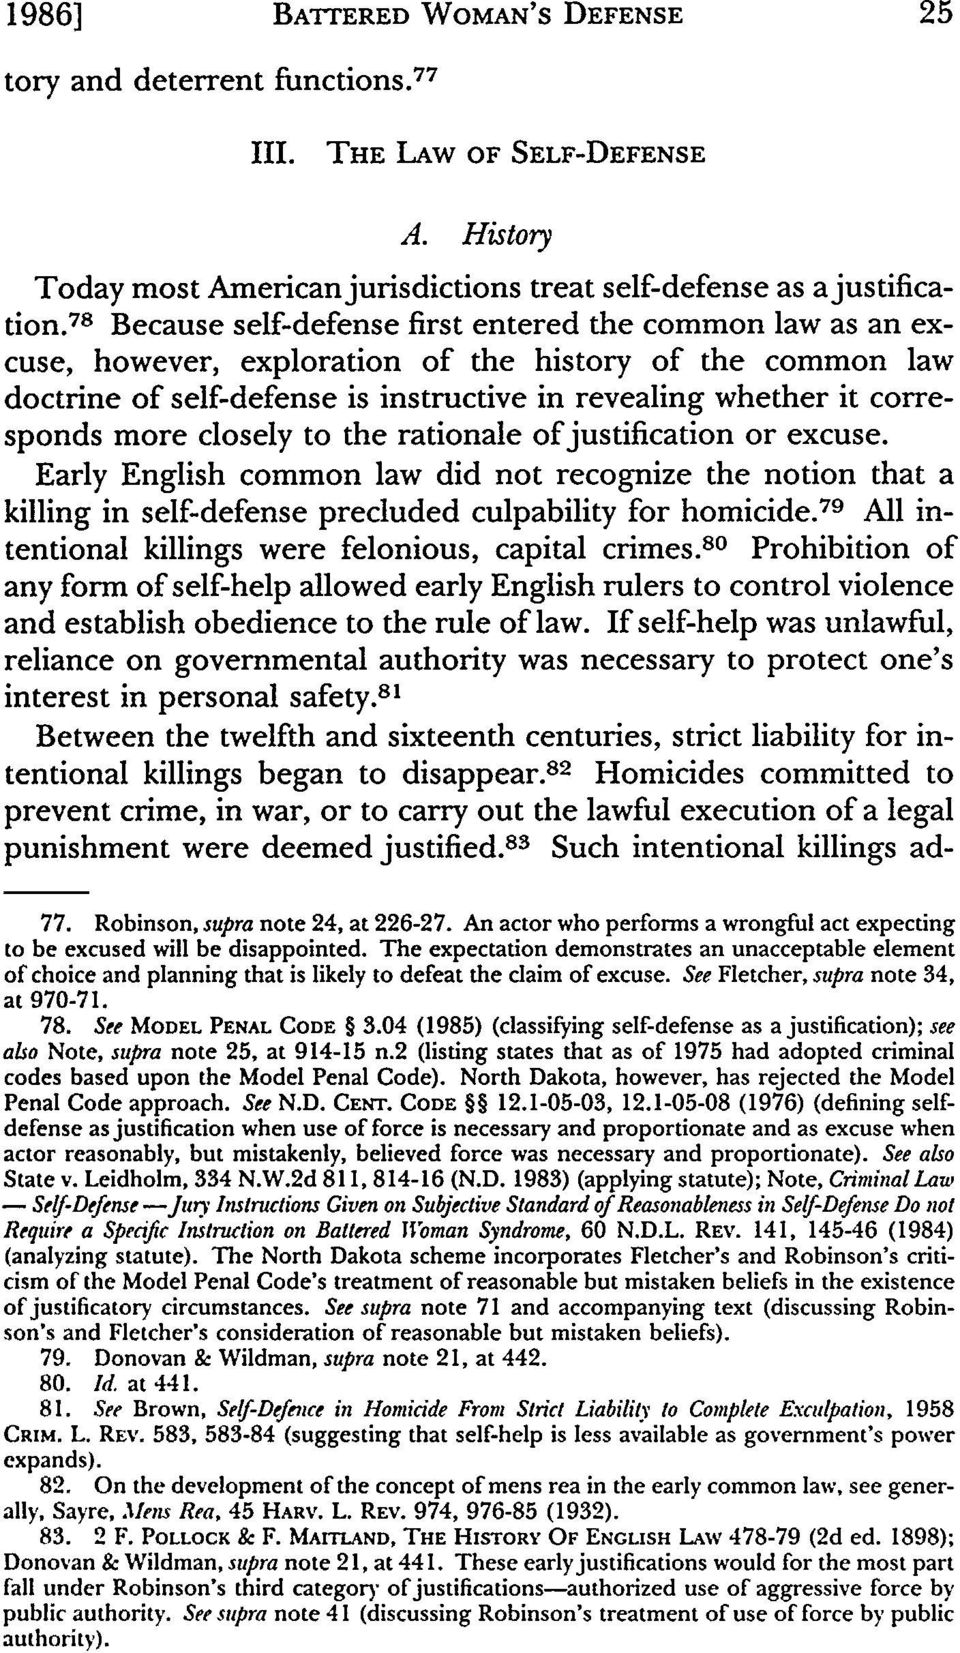 more closely to the rationale of justification or excuse. Early English common law did not recognize the notion that a killing in self-defense precluded culpability for homicide.